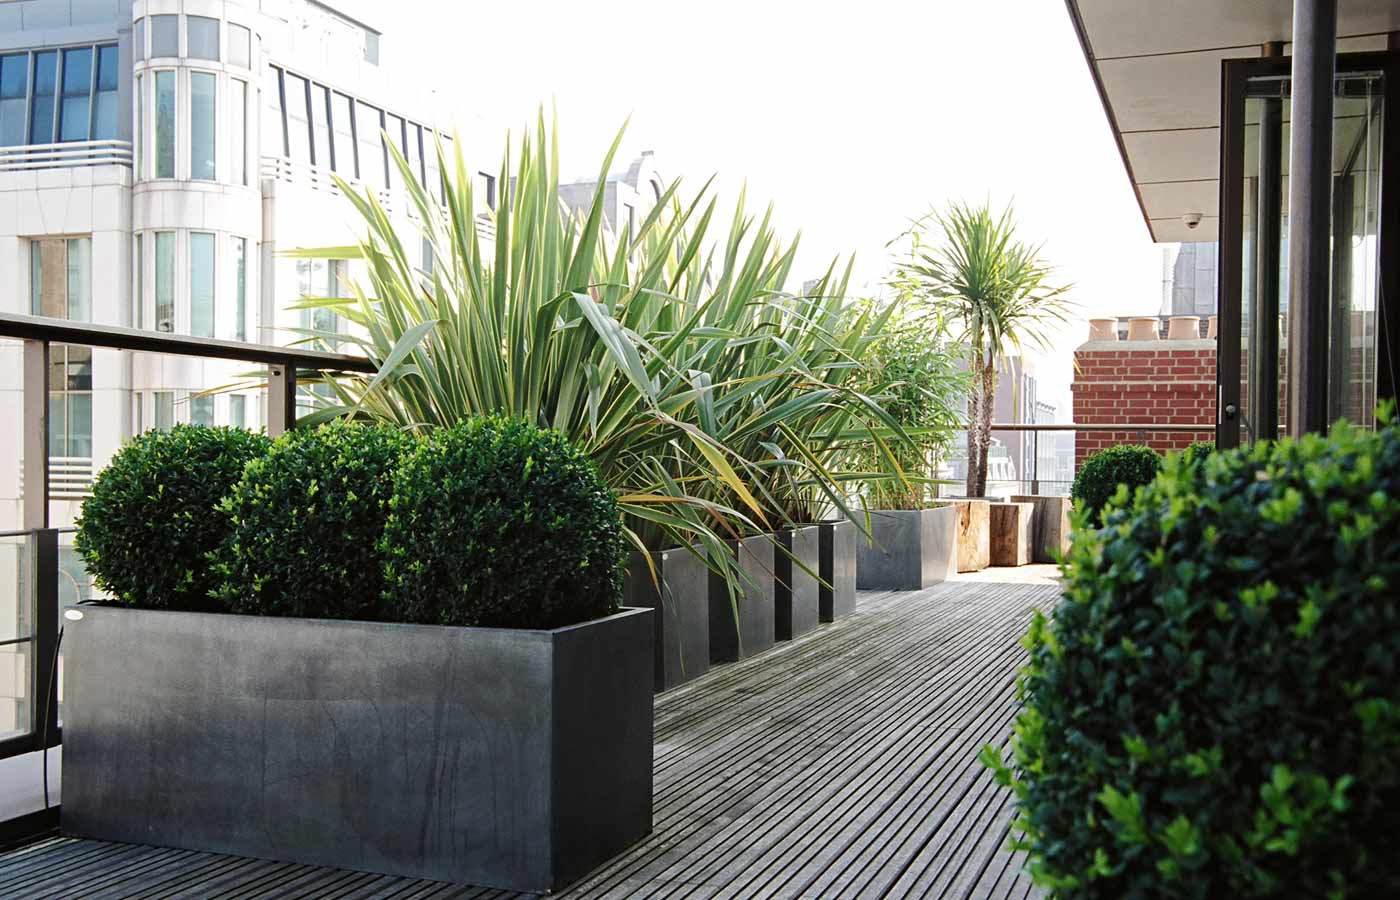 Architectural planting on the roof garden